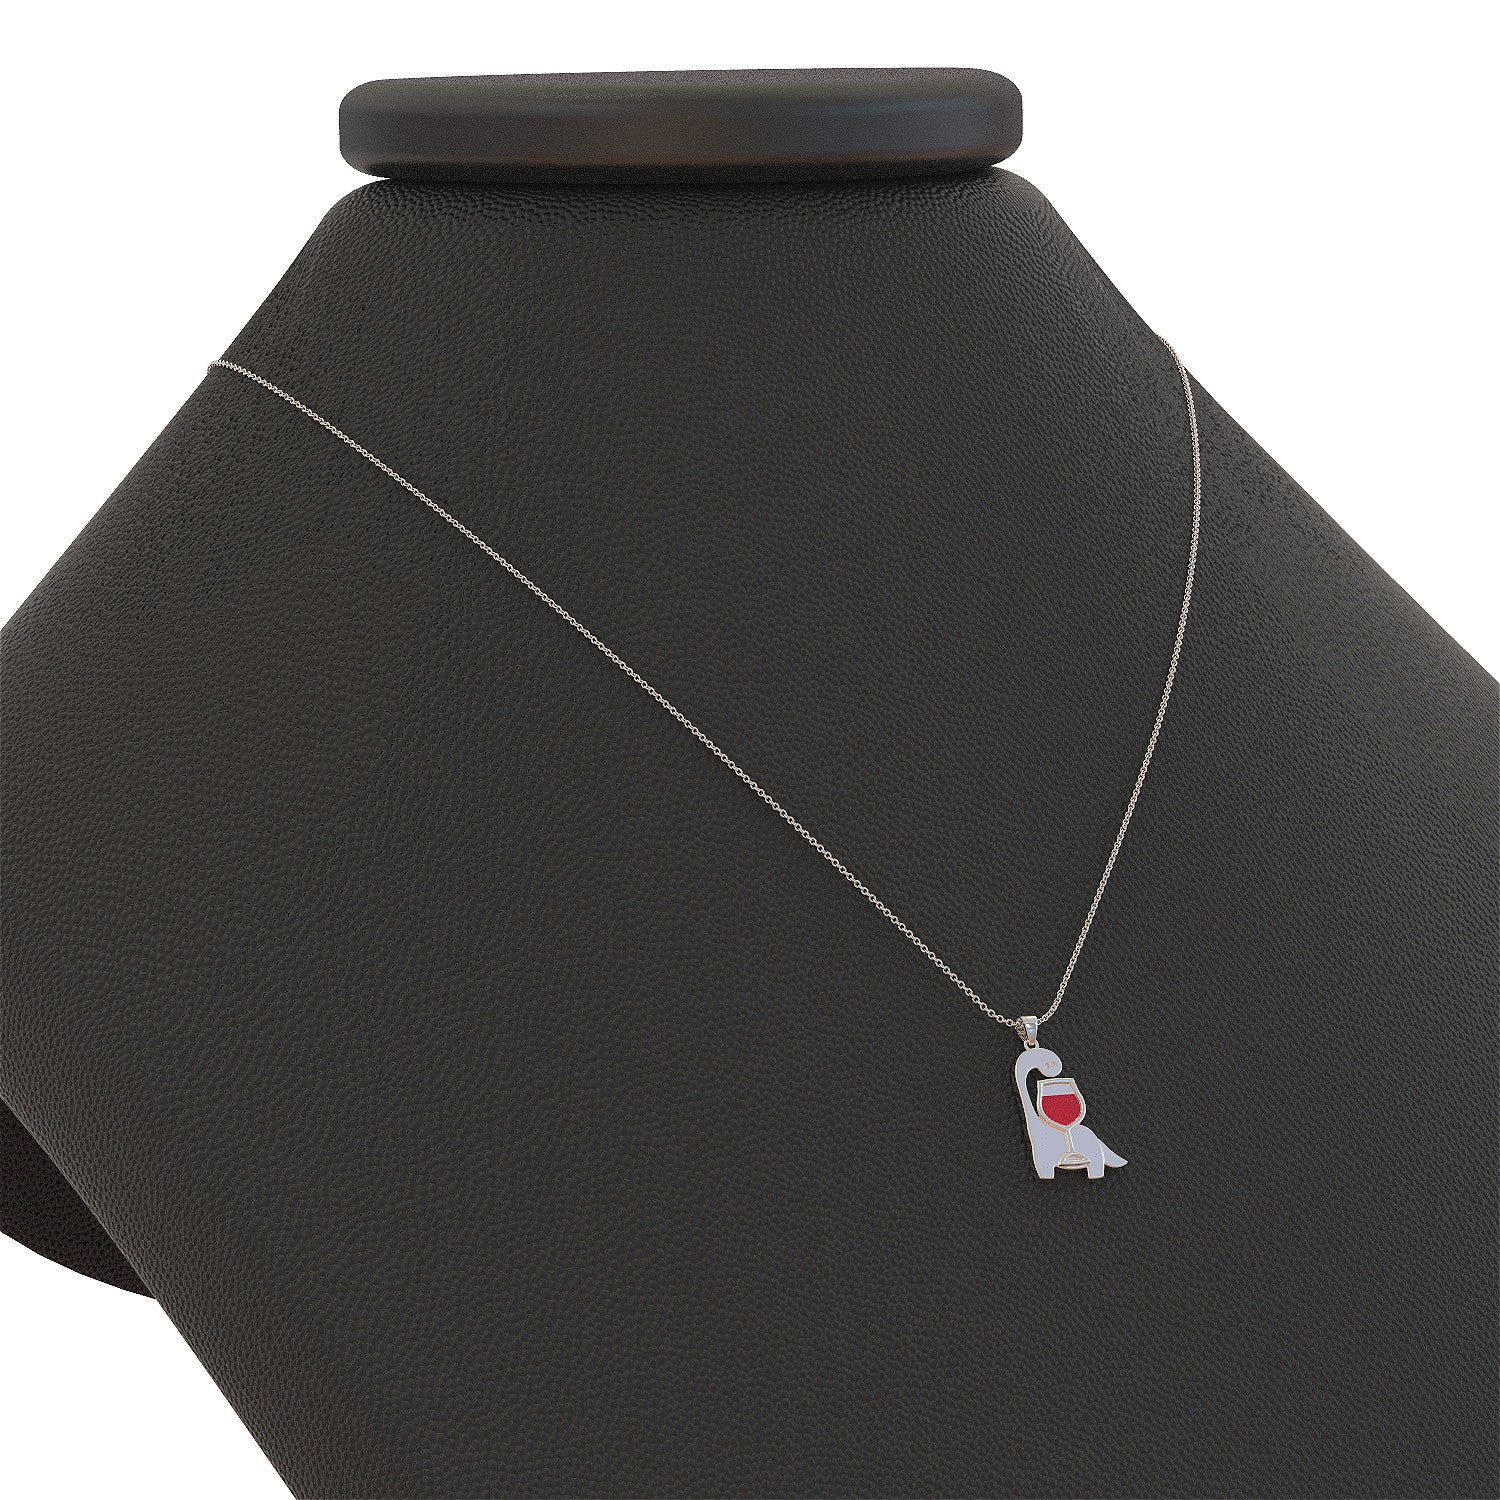 Winosaur Necklace